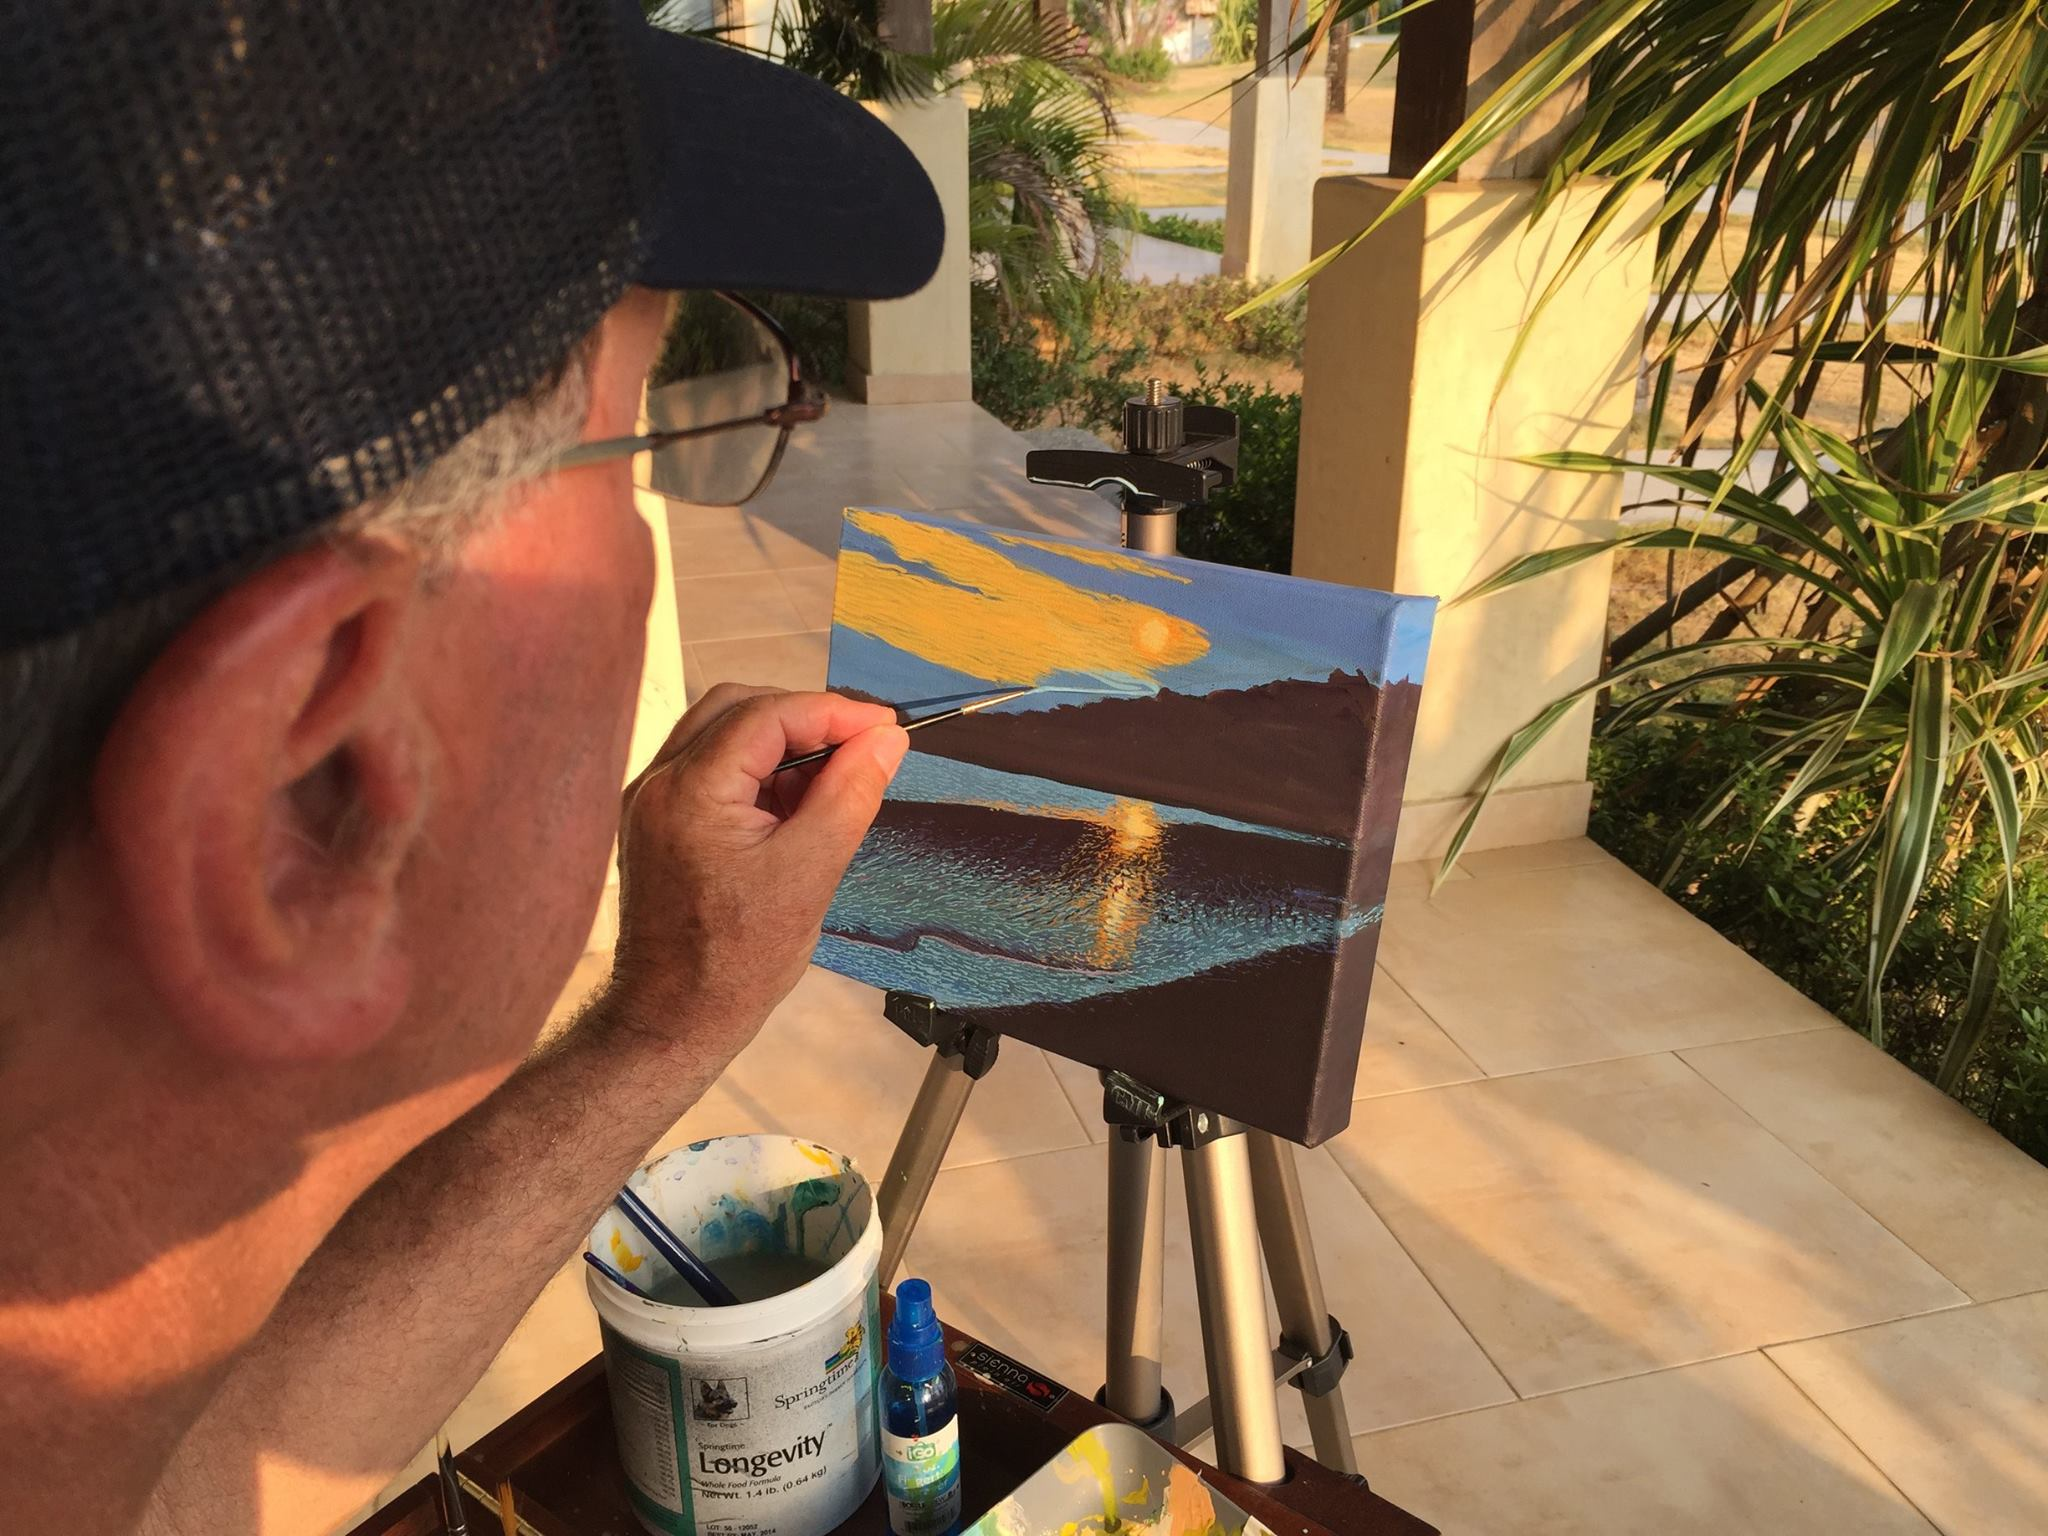 Painting outdoors . My new lightweight Plein air easel works perfect!